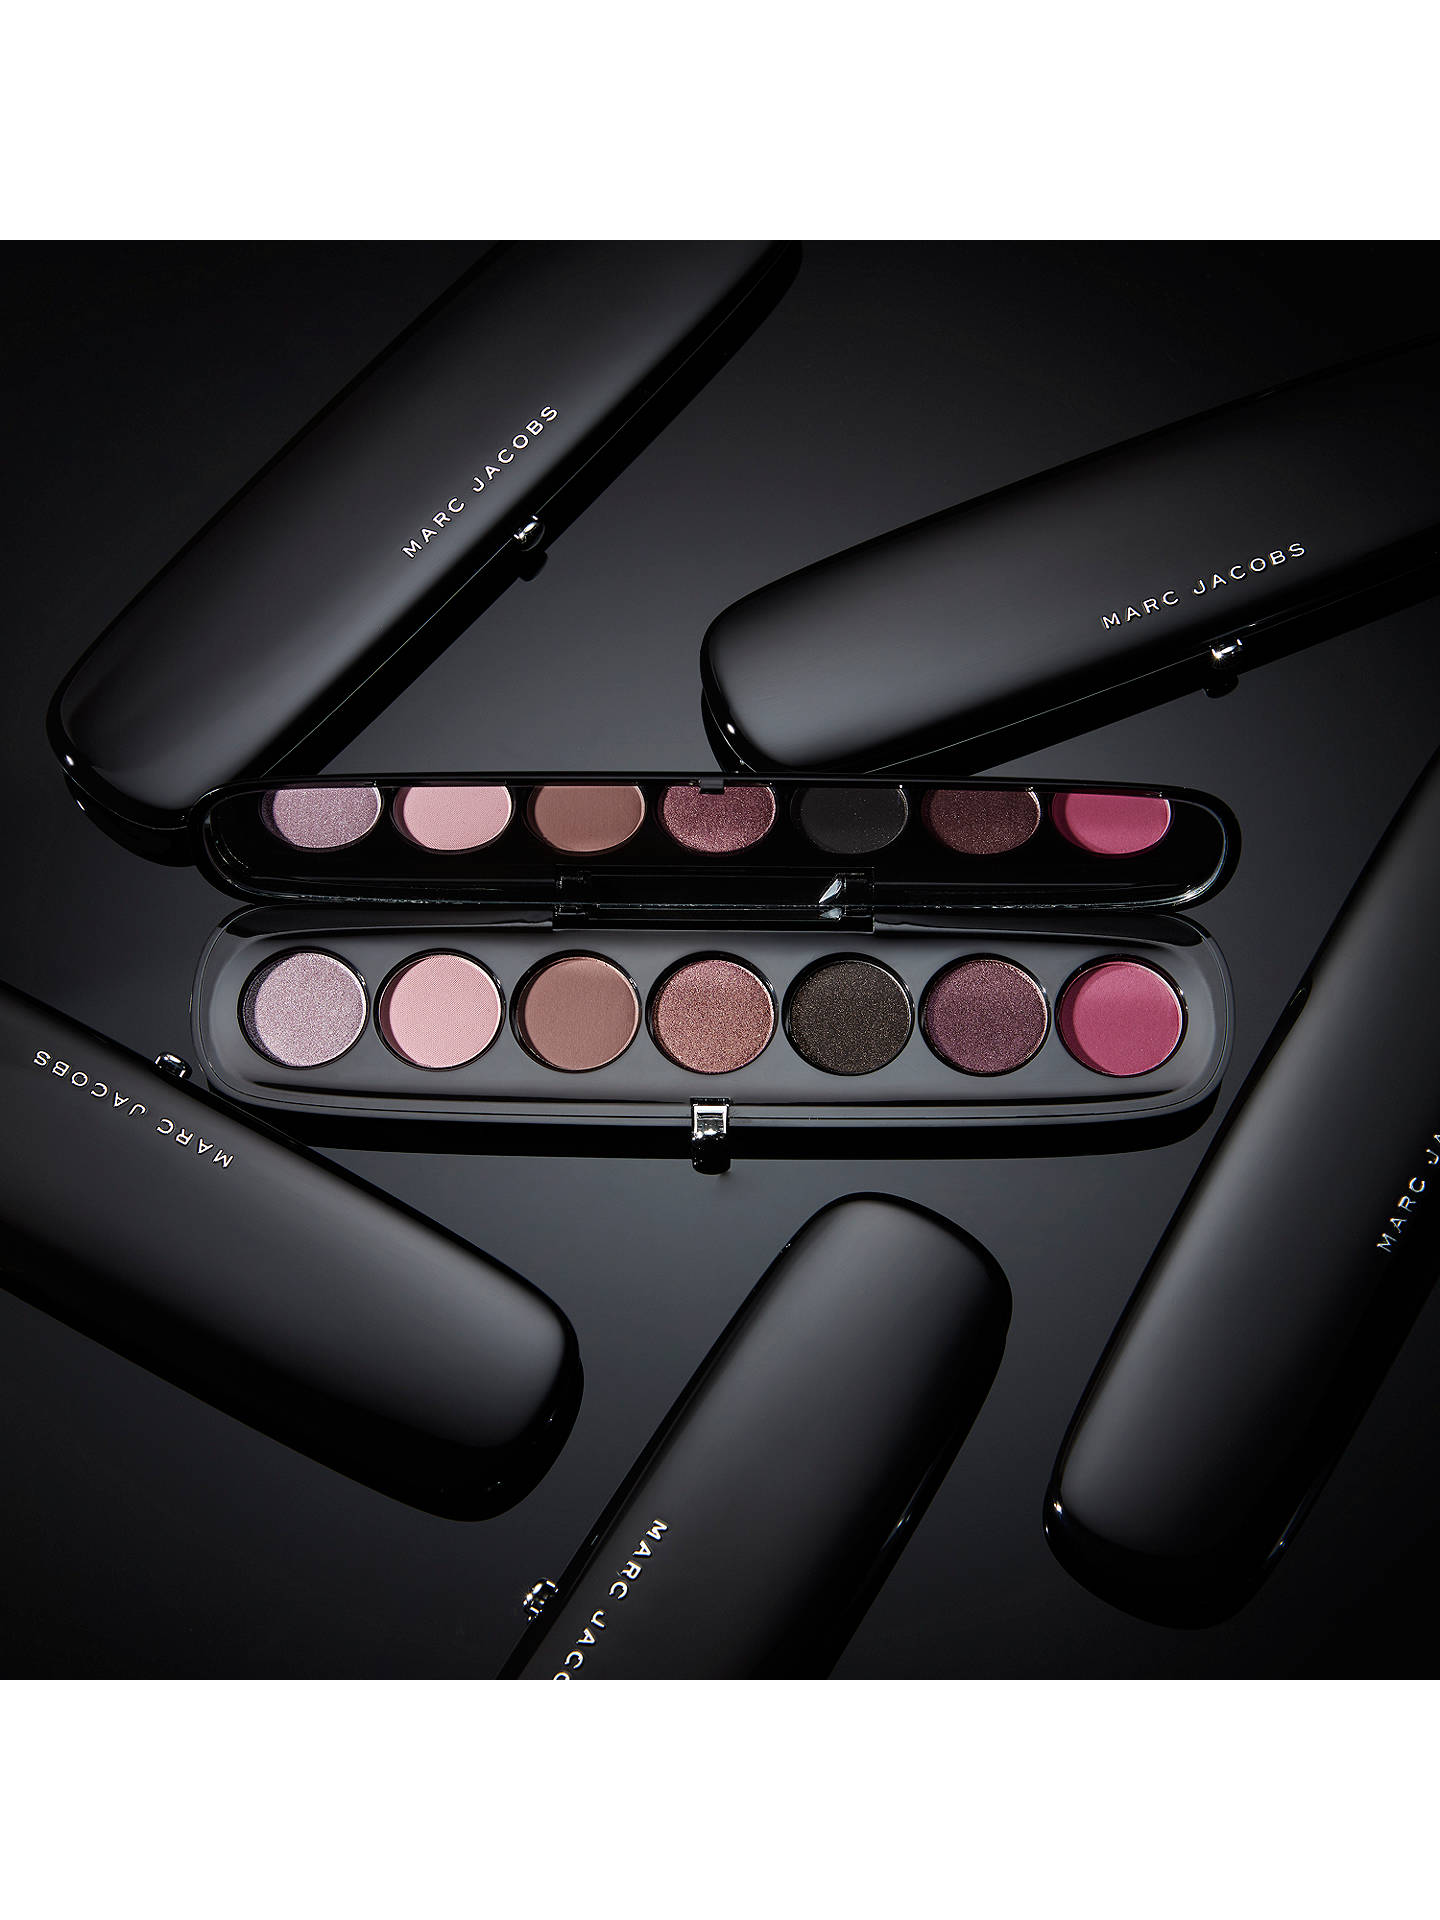 BuyMarc Jacobs Eye-Conic Longwear Eyeshadow Palette, Provocouture Online at johnlewis.com